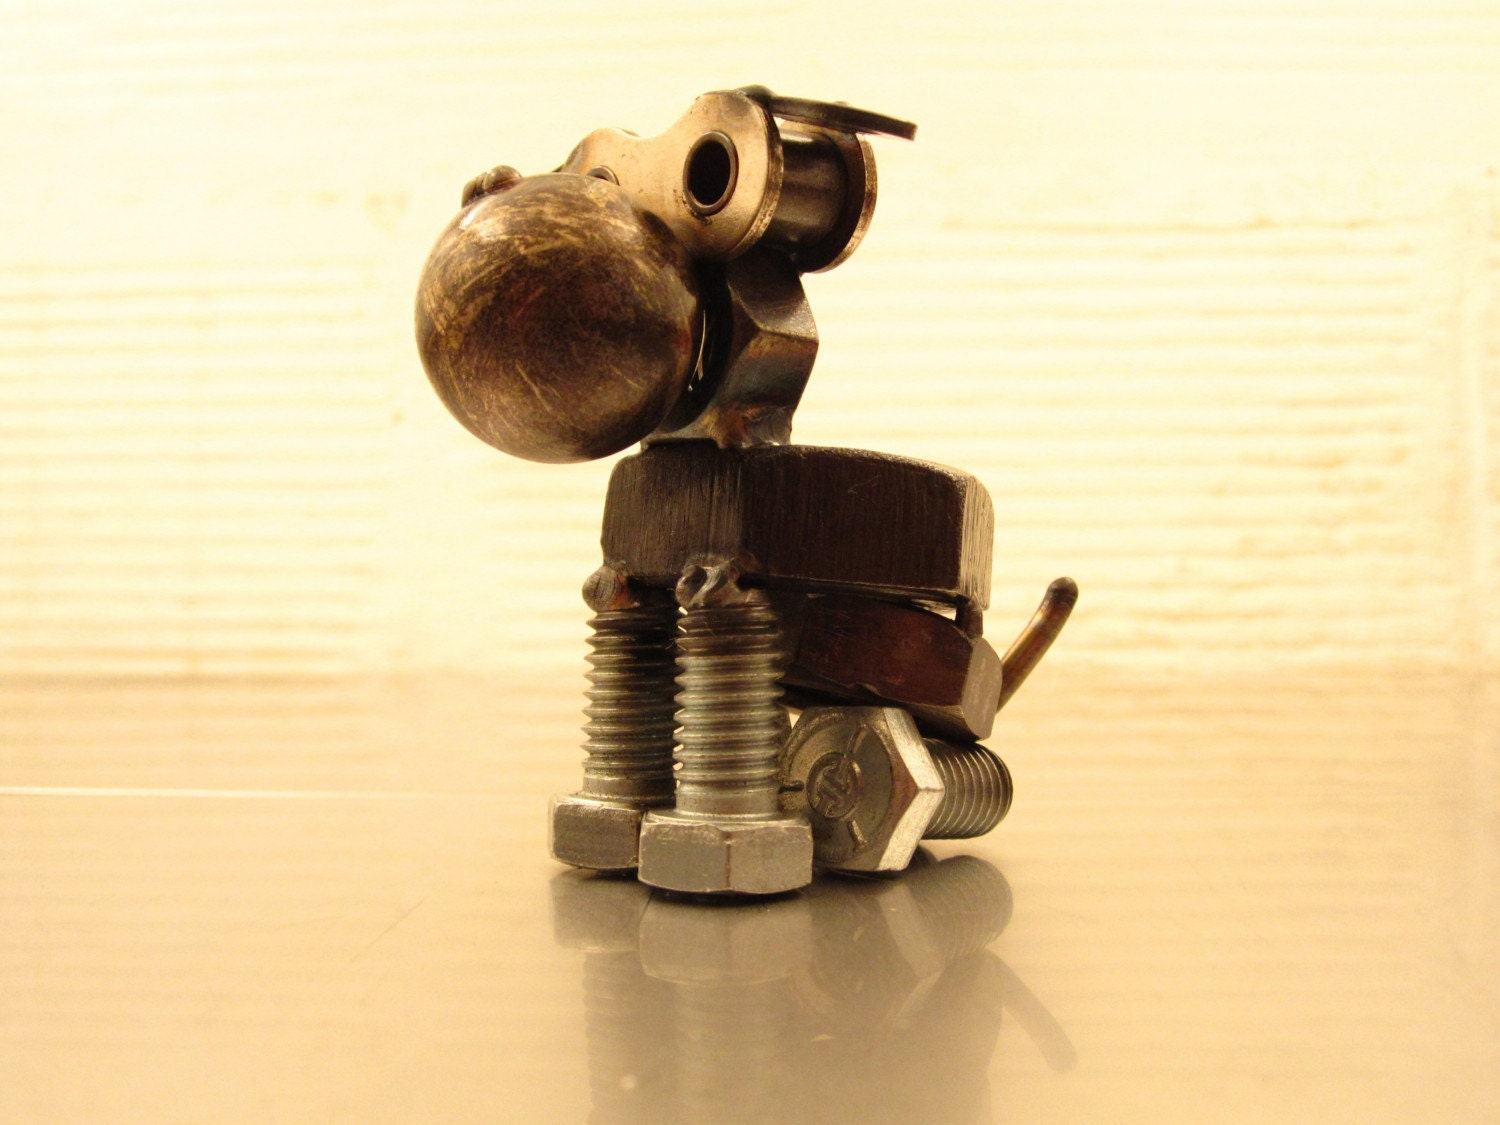 Plato, a nuts and bolts dog sculpture